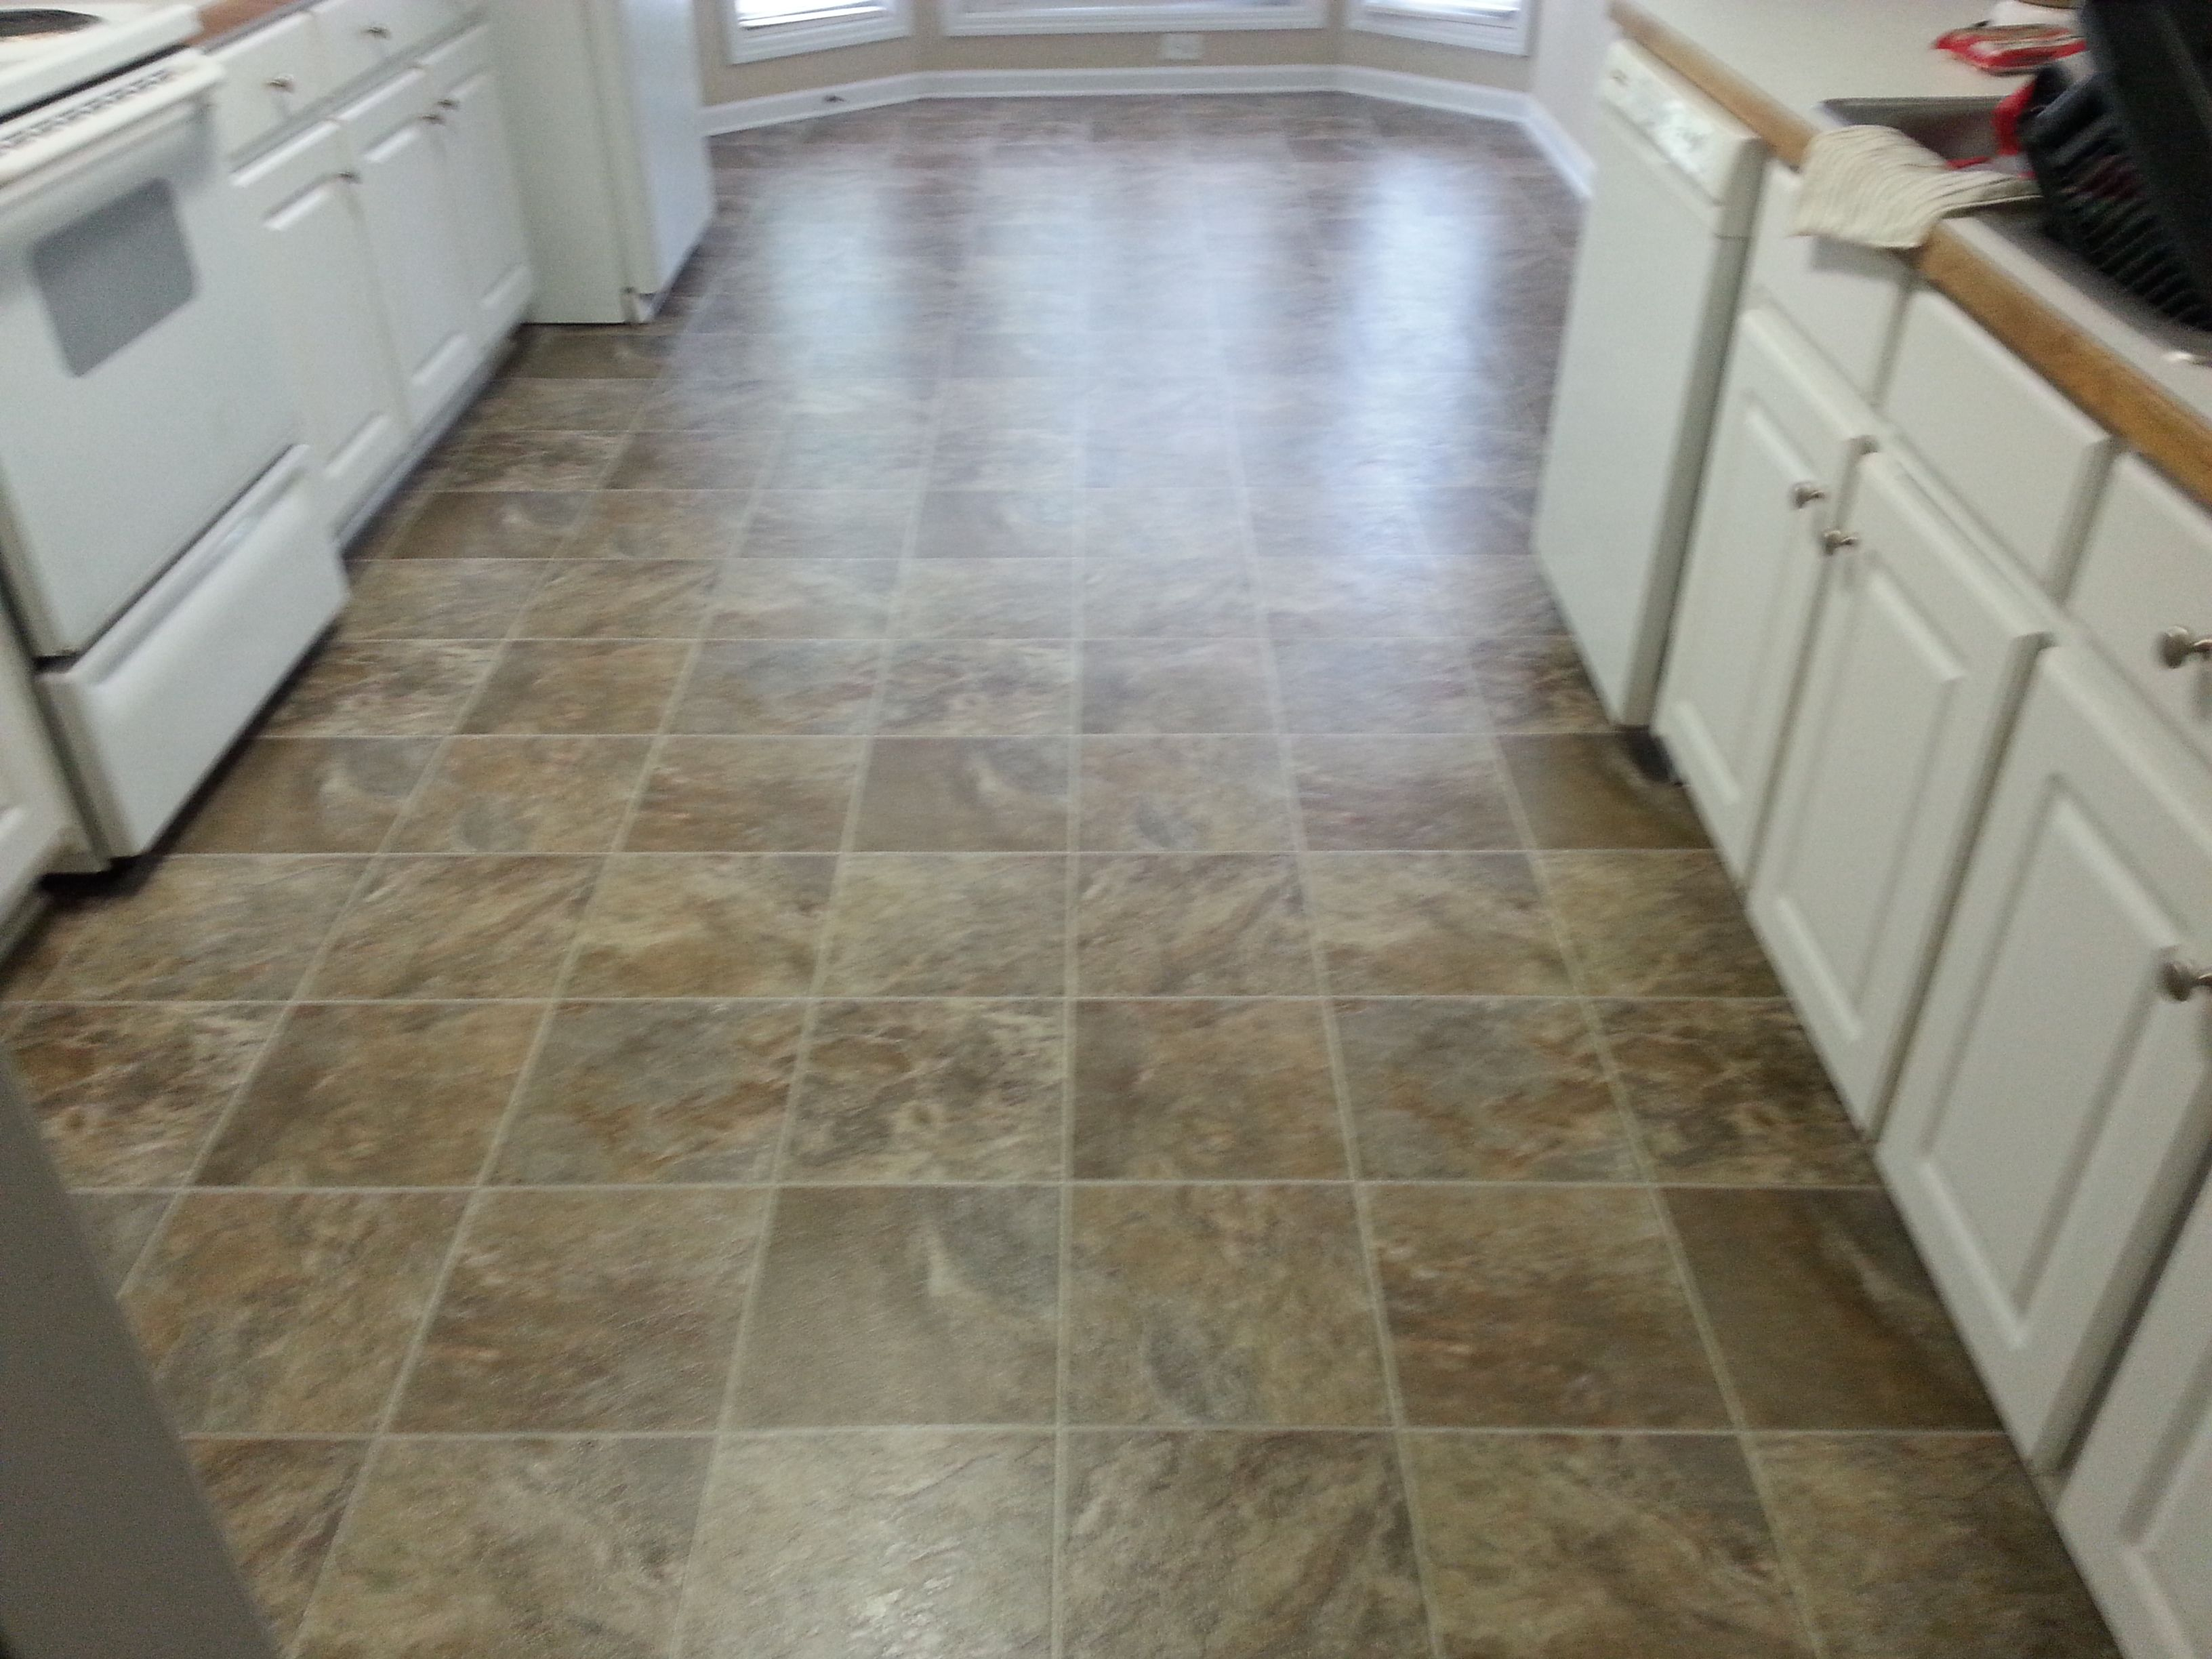 Mannington benchmark resilient sheet vinyl is versatile and a mannington benchmark resilient sheet vinyl is versatile and a natural looking alternative to tile dailygadgetfo Image collections